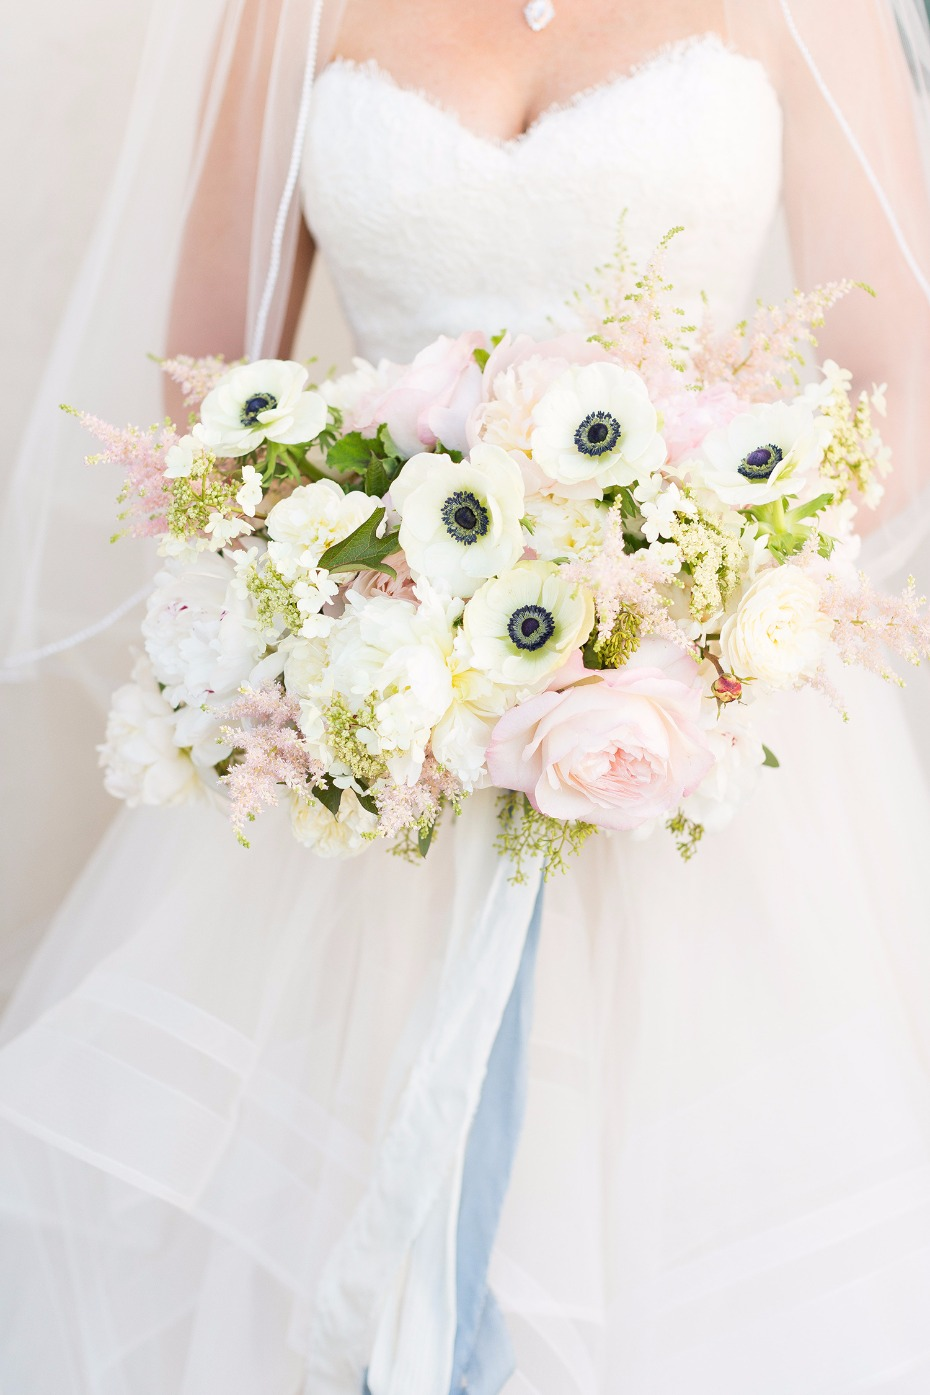 White and blush bouquet with blue ribbon